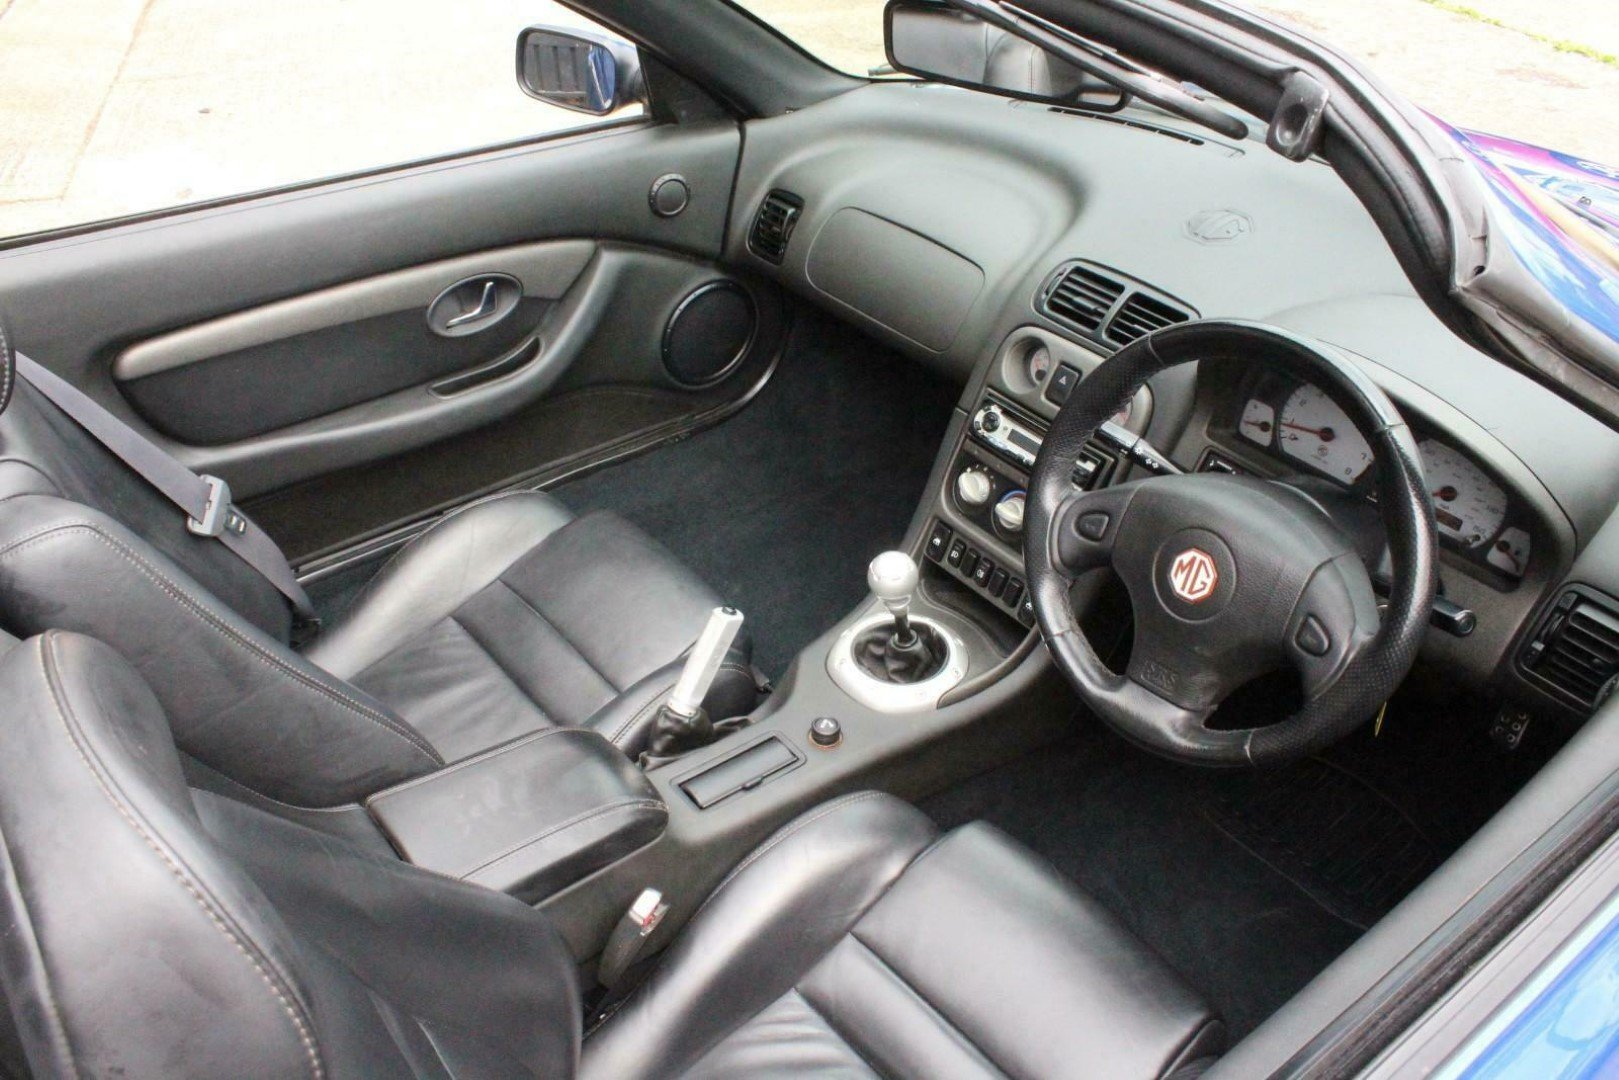 2003 MGTF 160,RARE COLOUR,OXFORD LEATHER,NEW HEADGASKET, For Sale (picture 3 of 6)